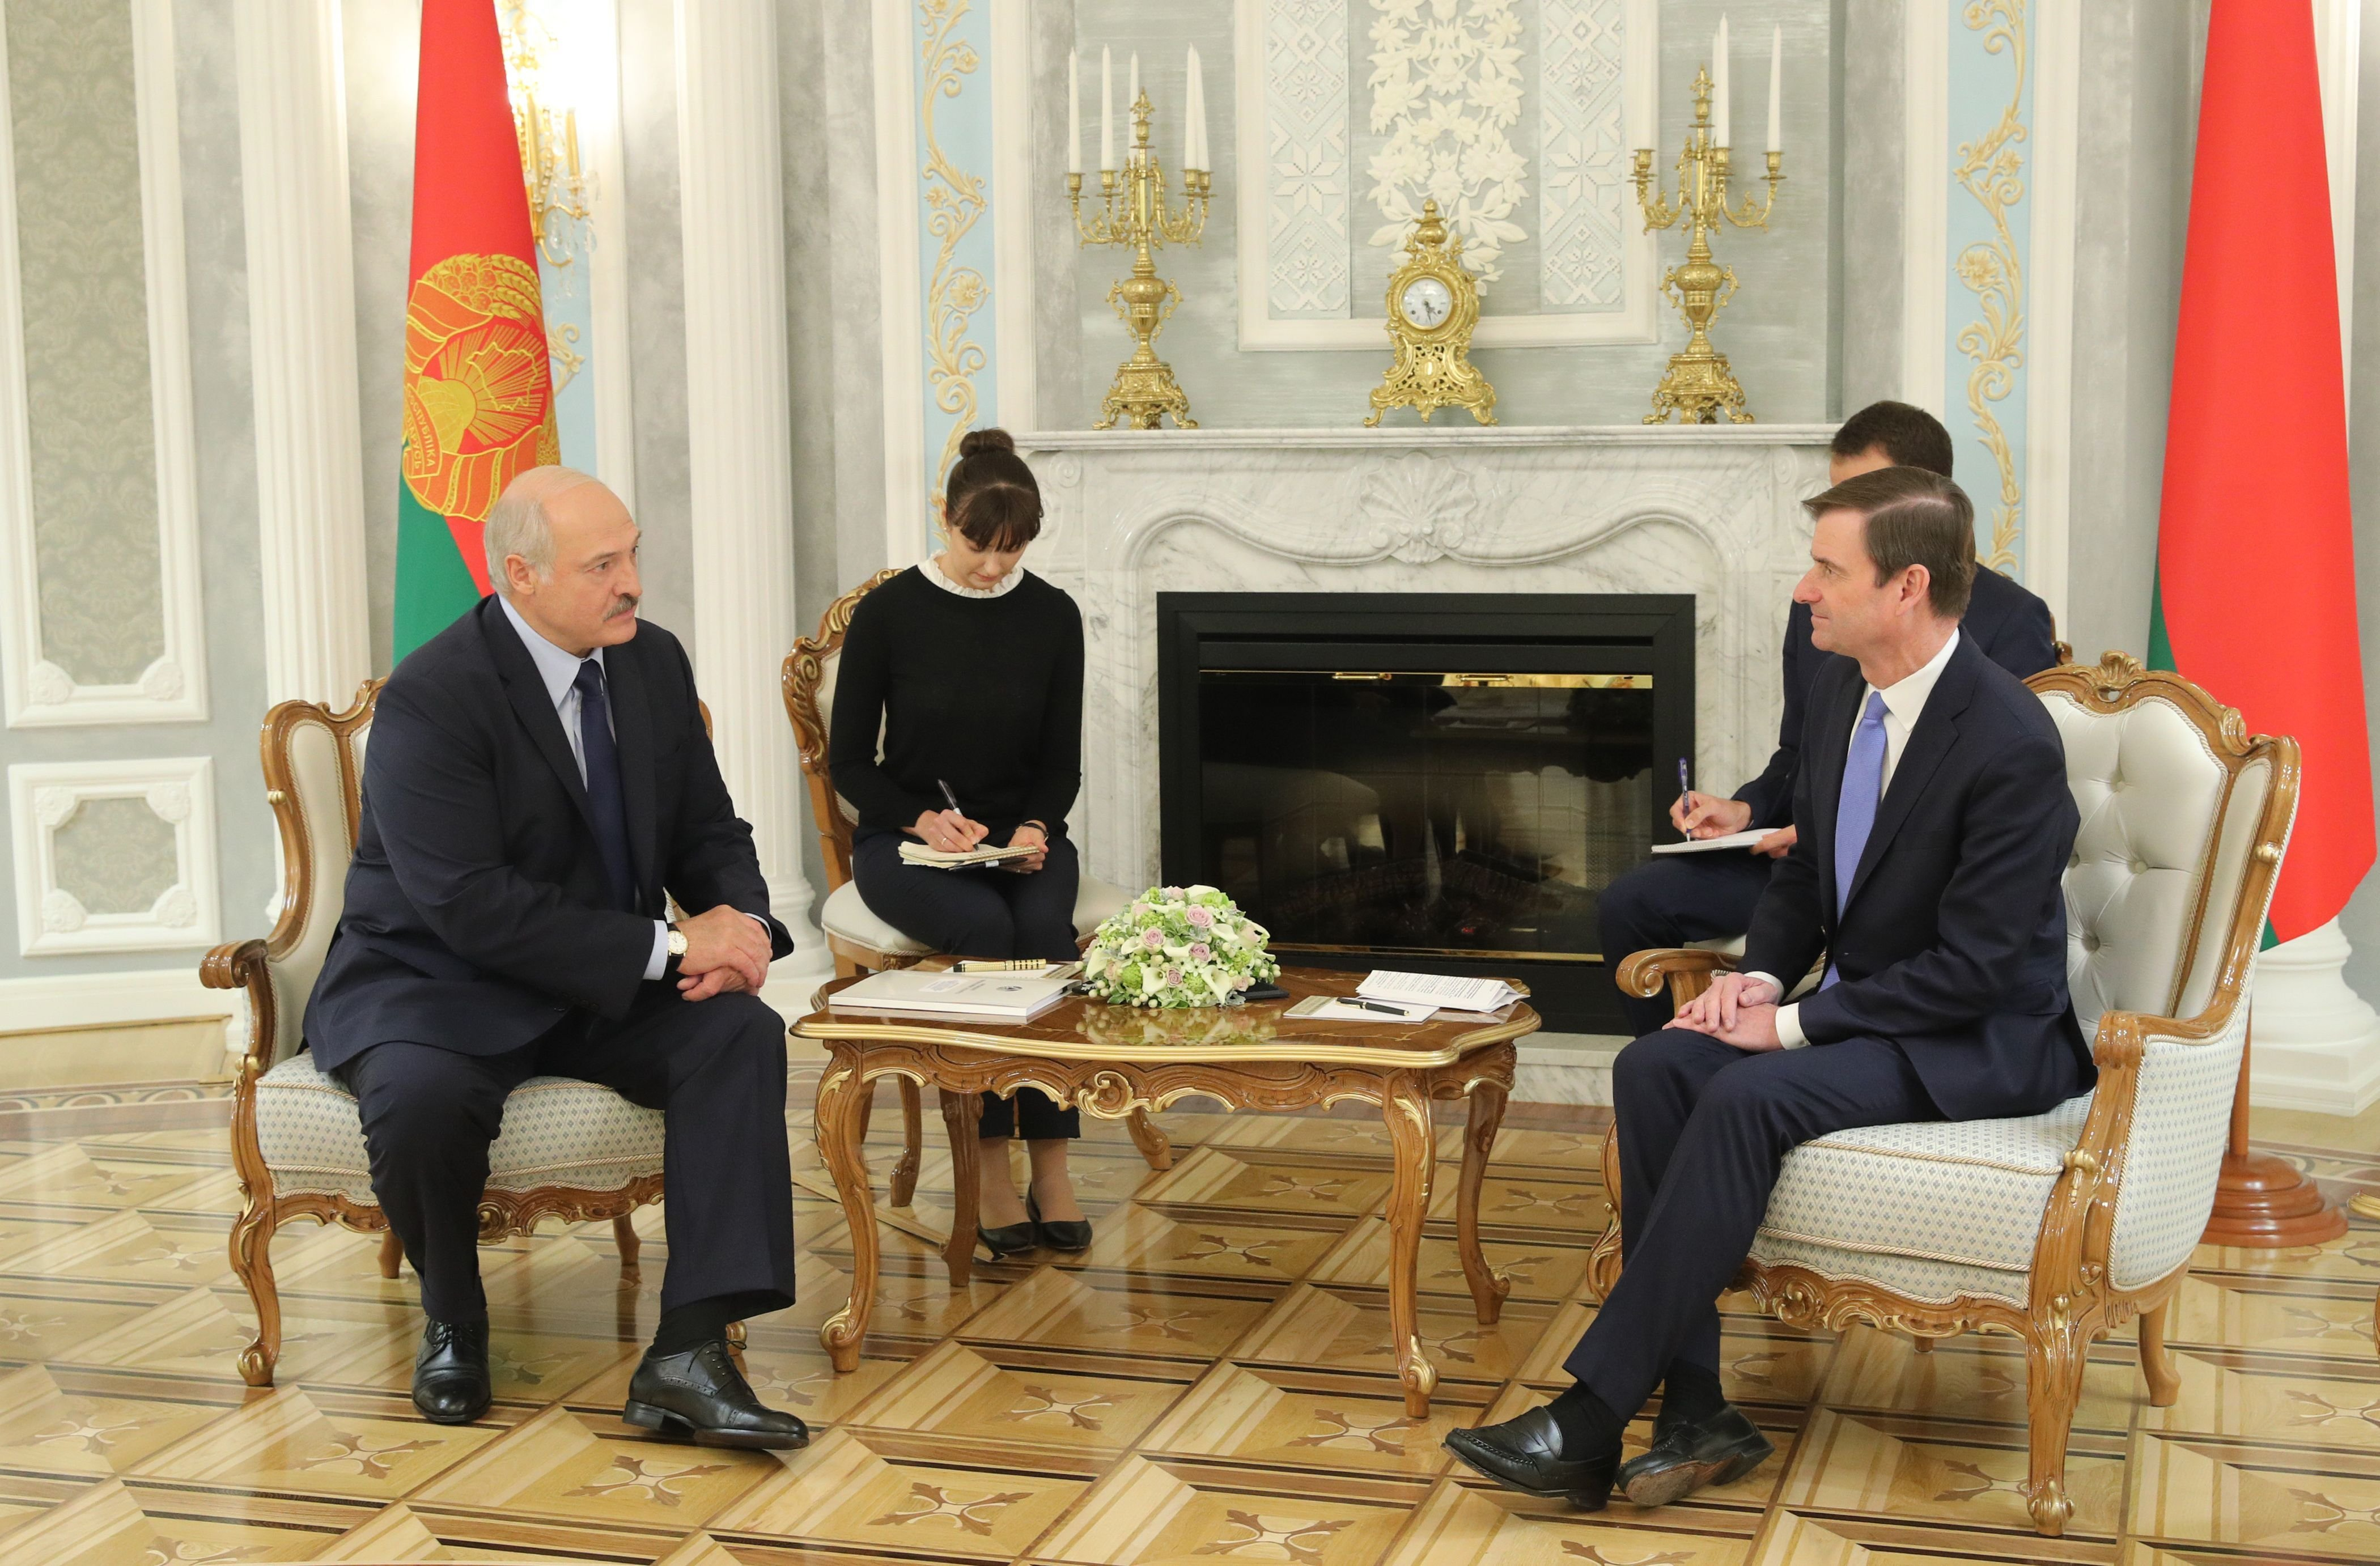 US prepared to exchange ambassadors with Belarus after years of tensions